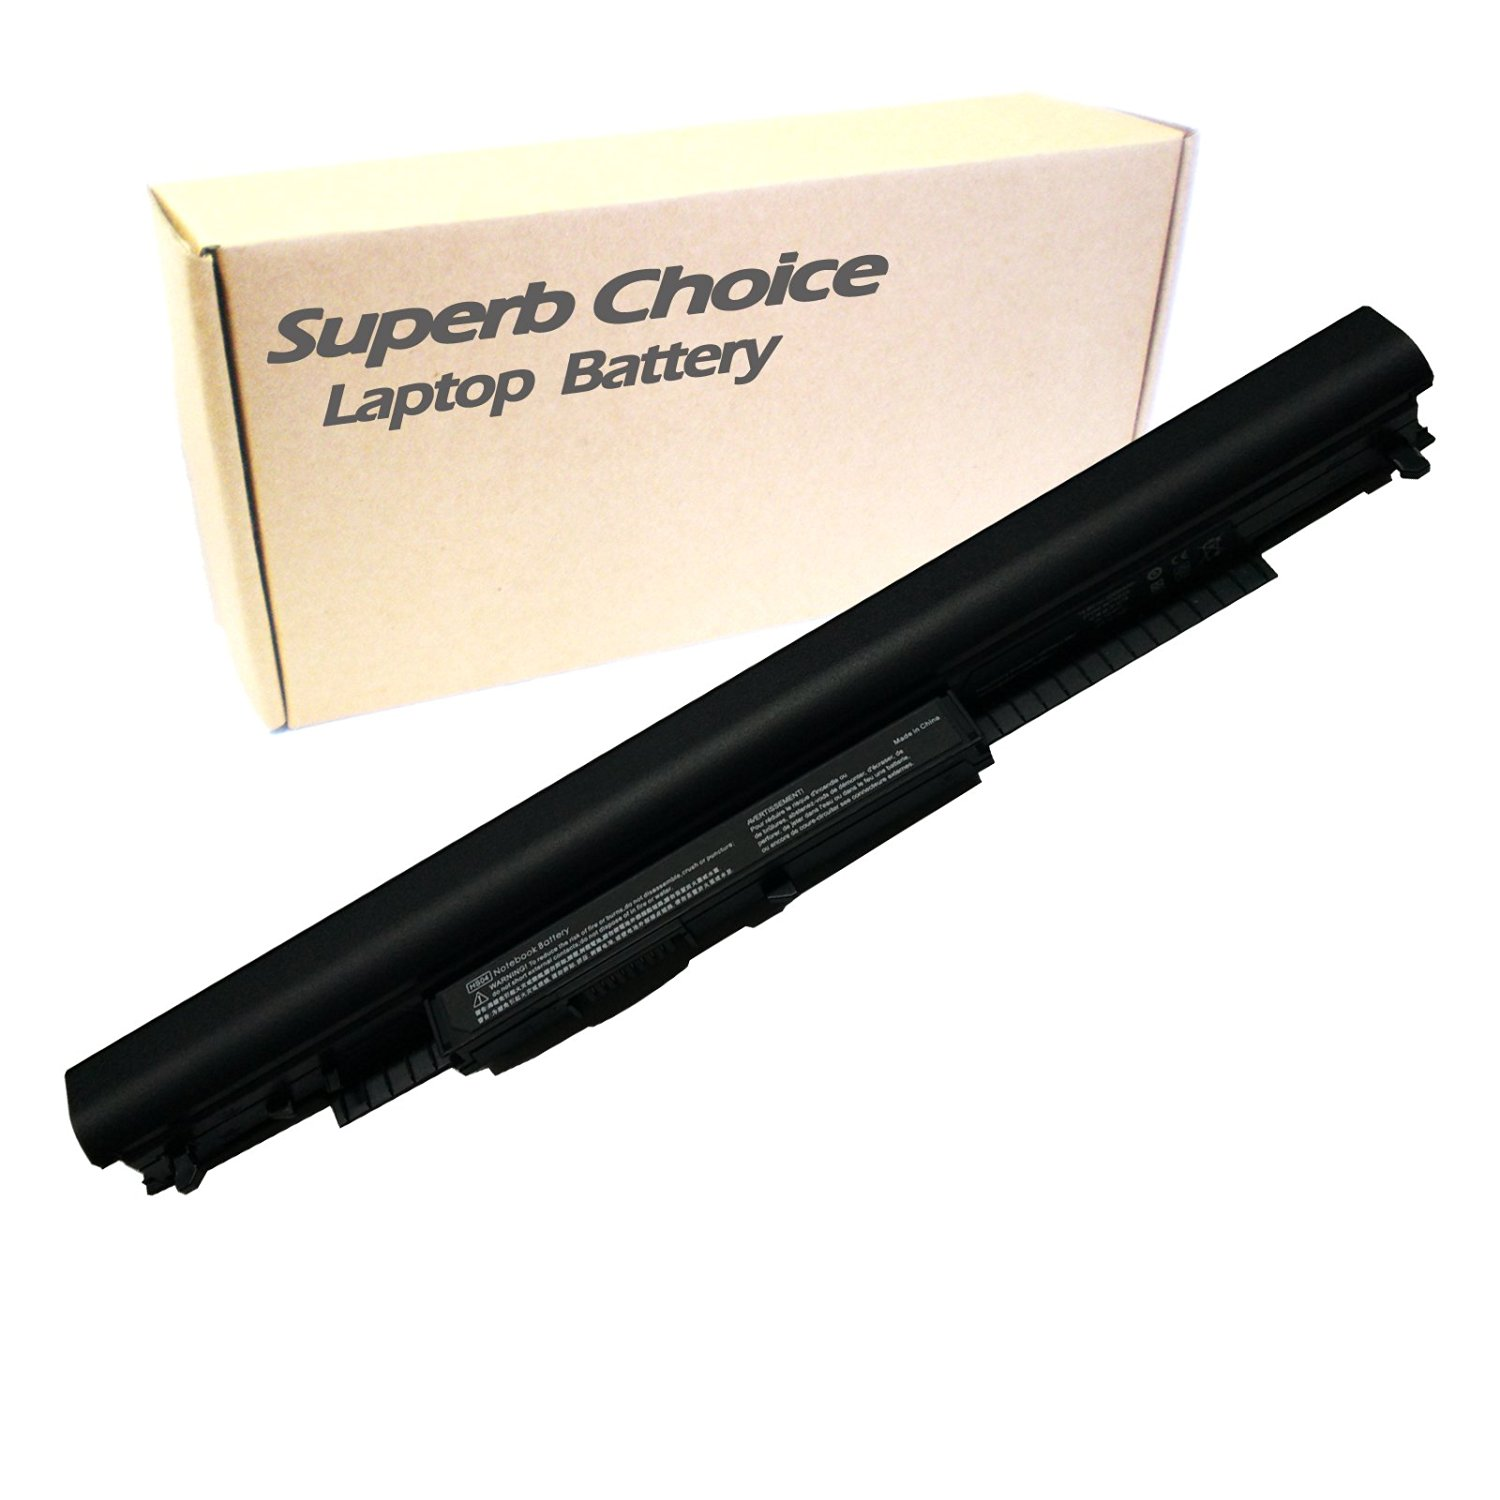 HP 807956-001 Laptop Battery - Premium Superb Choice® 4-cell Li-ion Battery